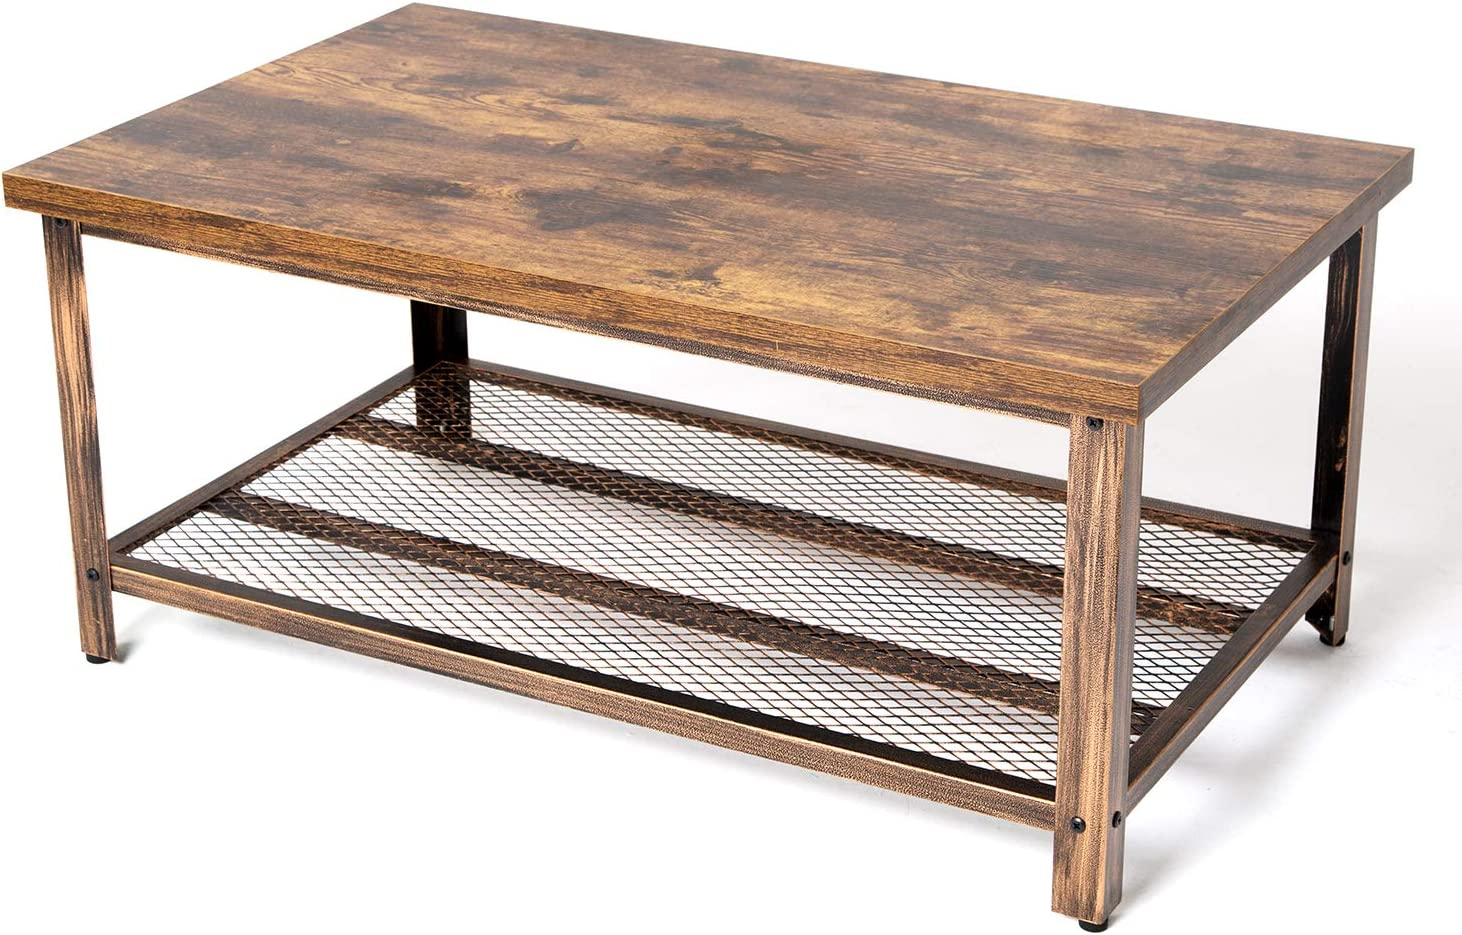 "TOPSKY Coffee Table with 1.18"" Desktop Lower Shelf for Living Room, Stable Rustic Metal Frame (Rustic Brown)"